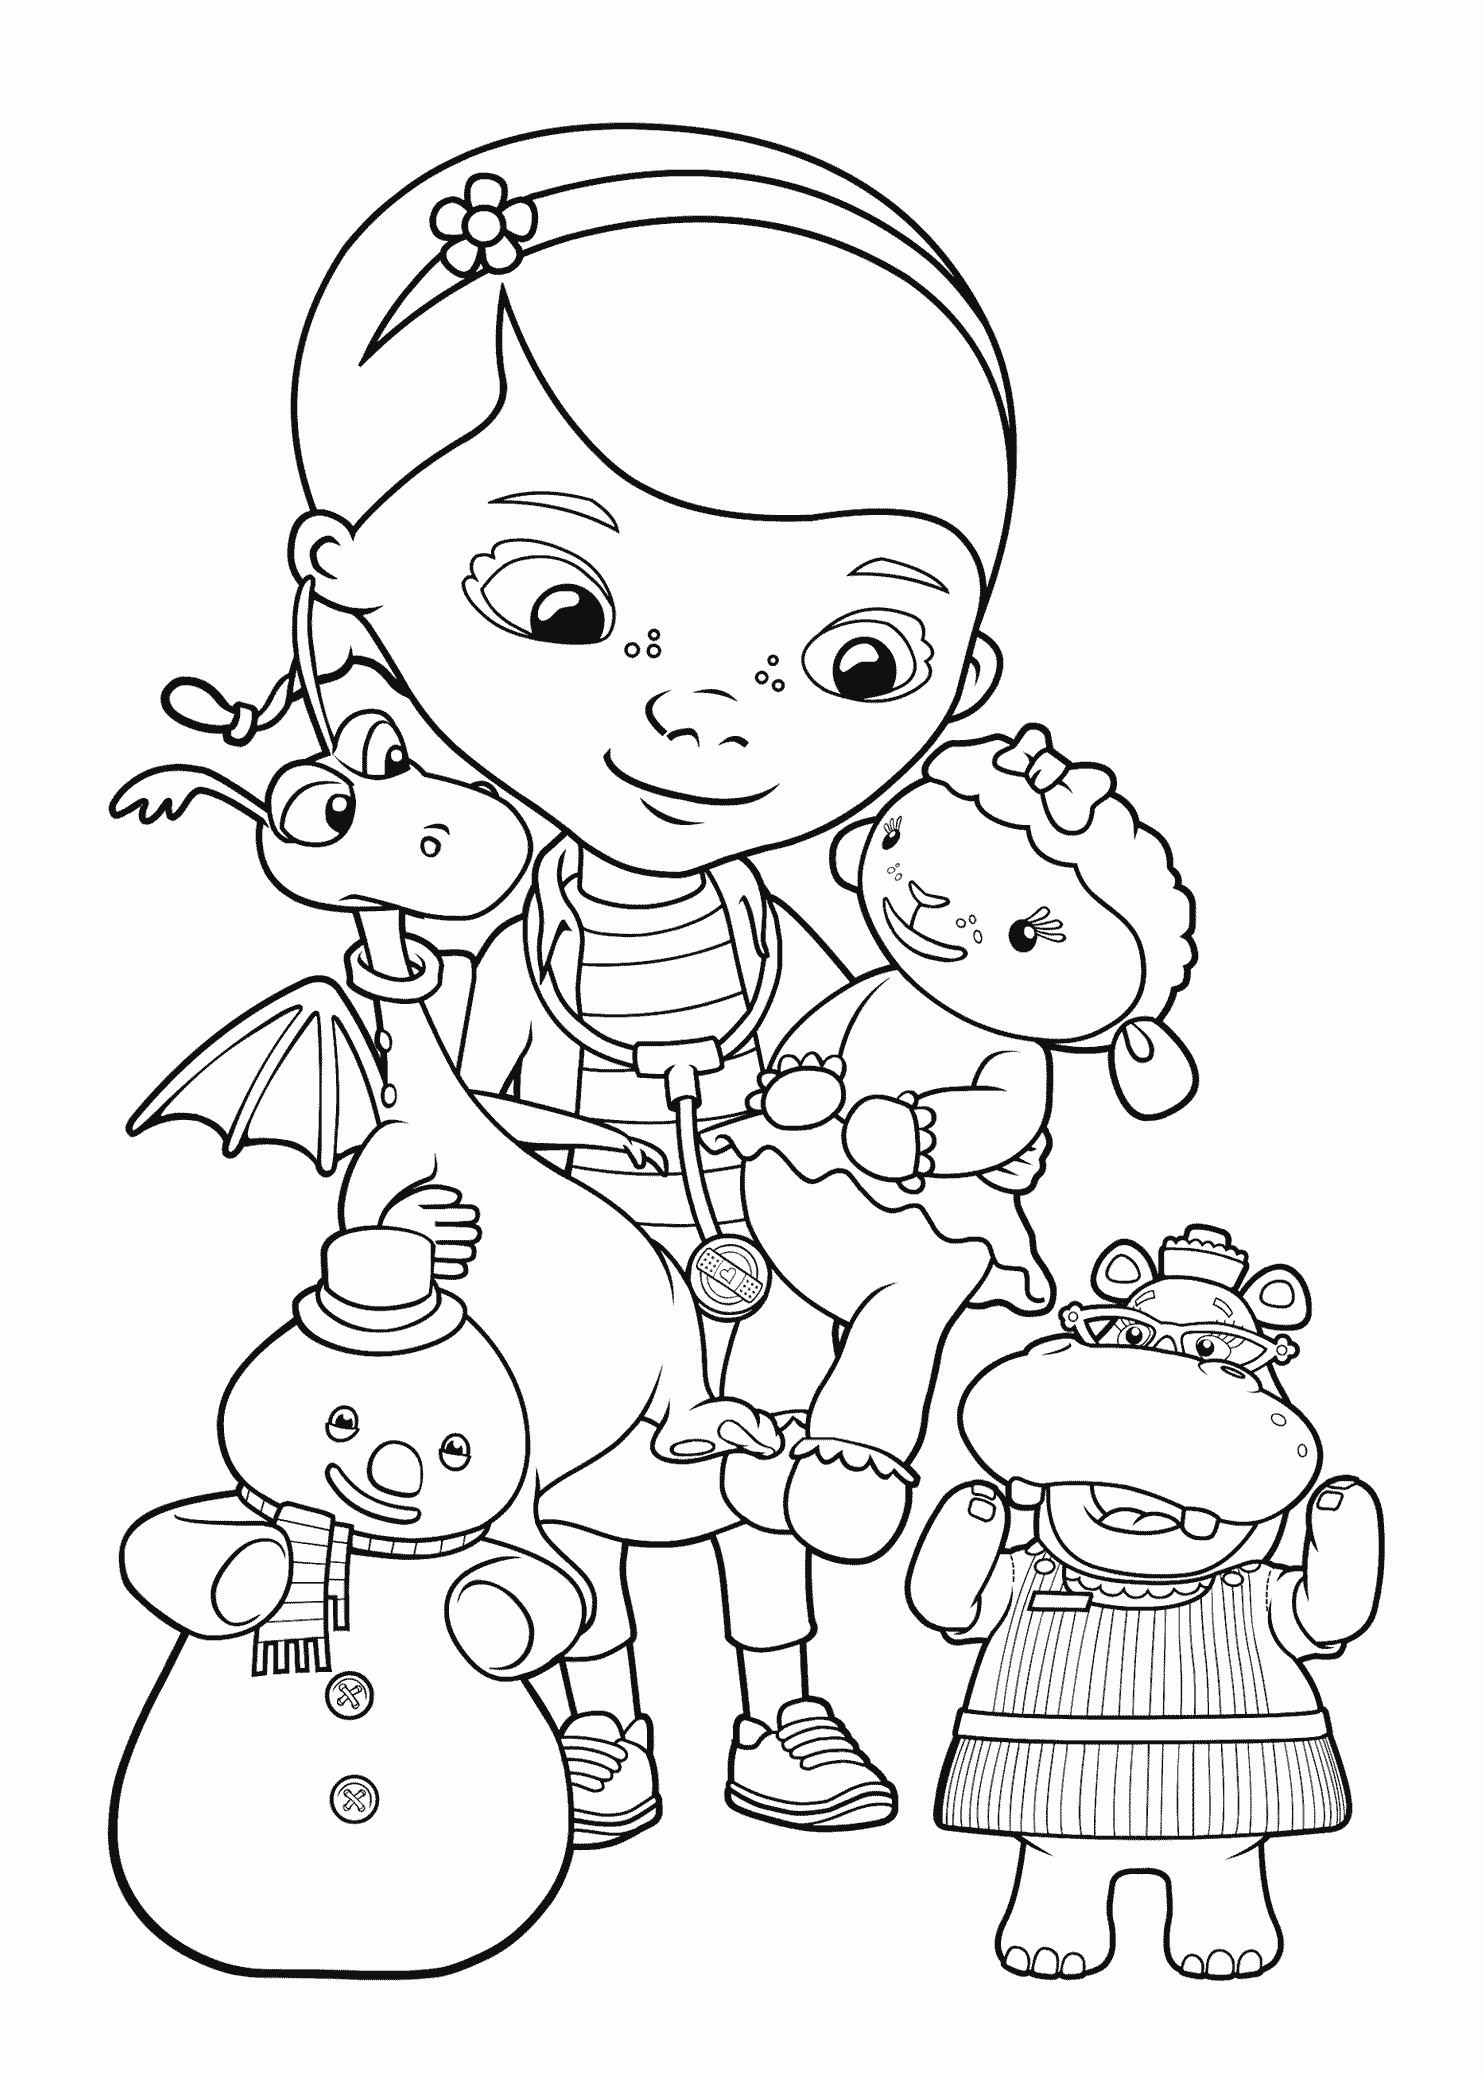 1483x2079 Mummy Coloring Pages Halloween Beautiful Awesome Inside Out